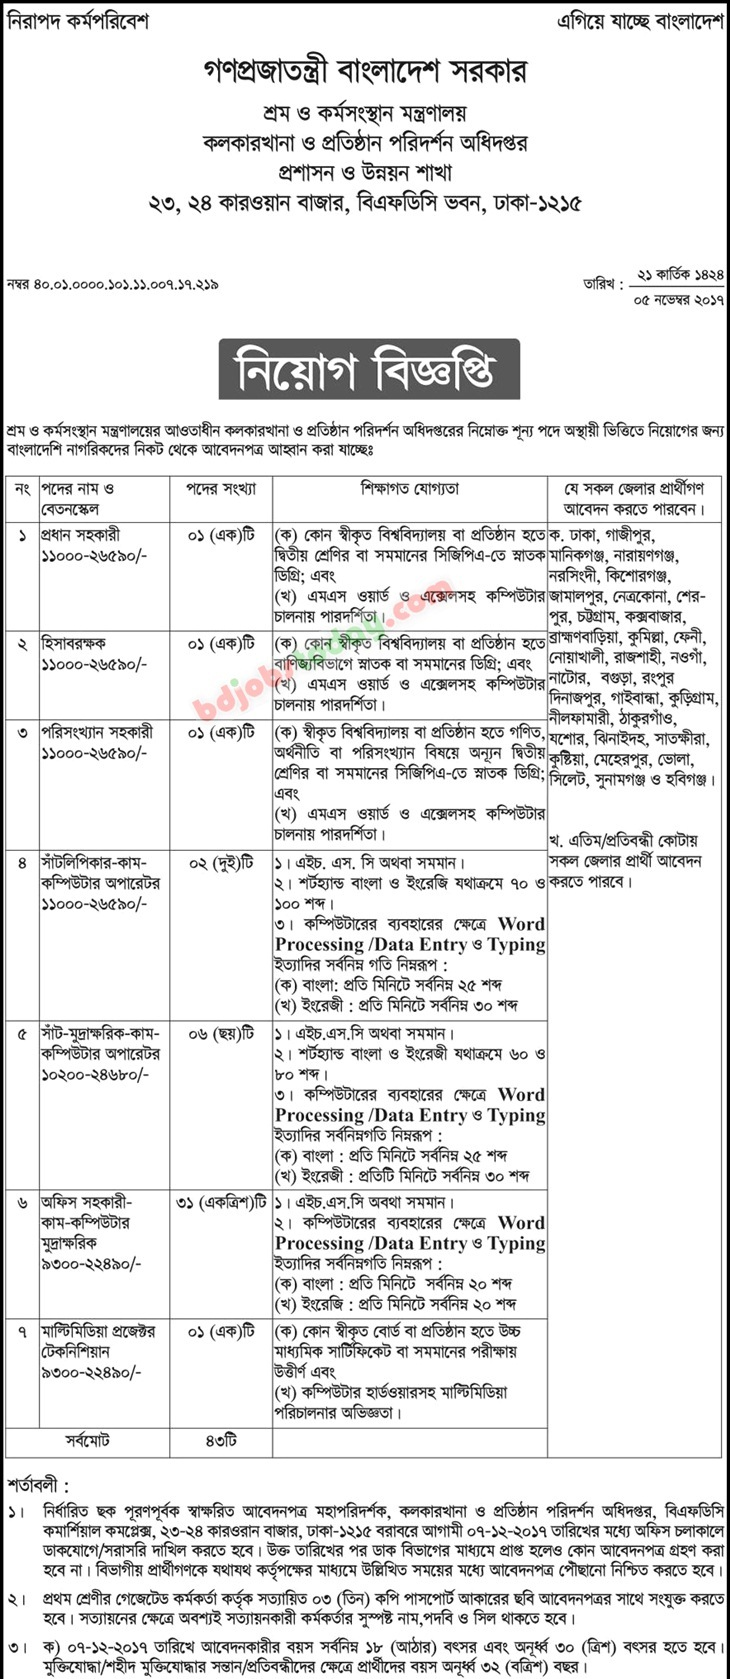 Ministry of Labour and Employment jobs